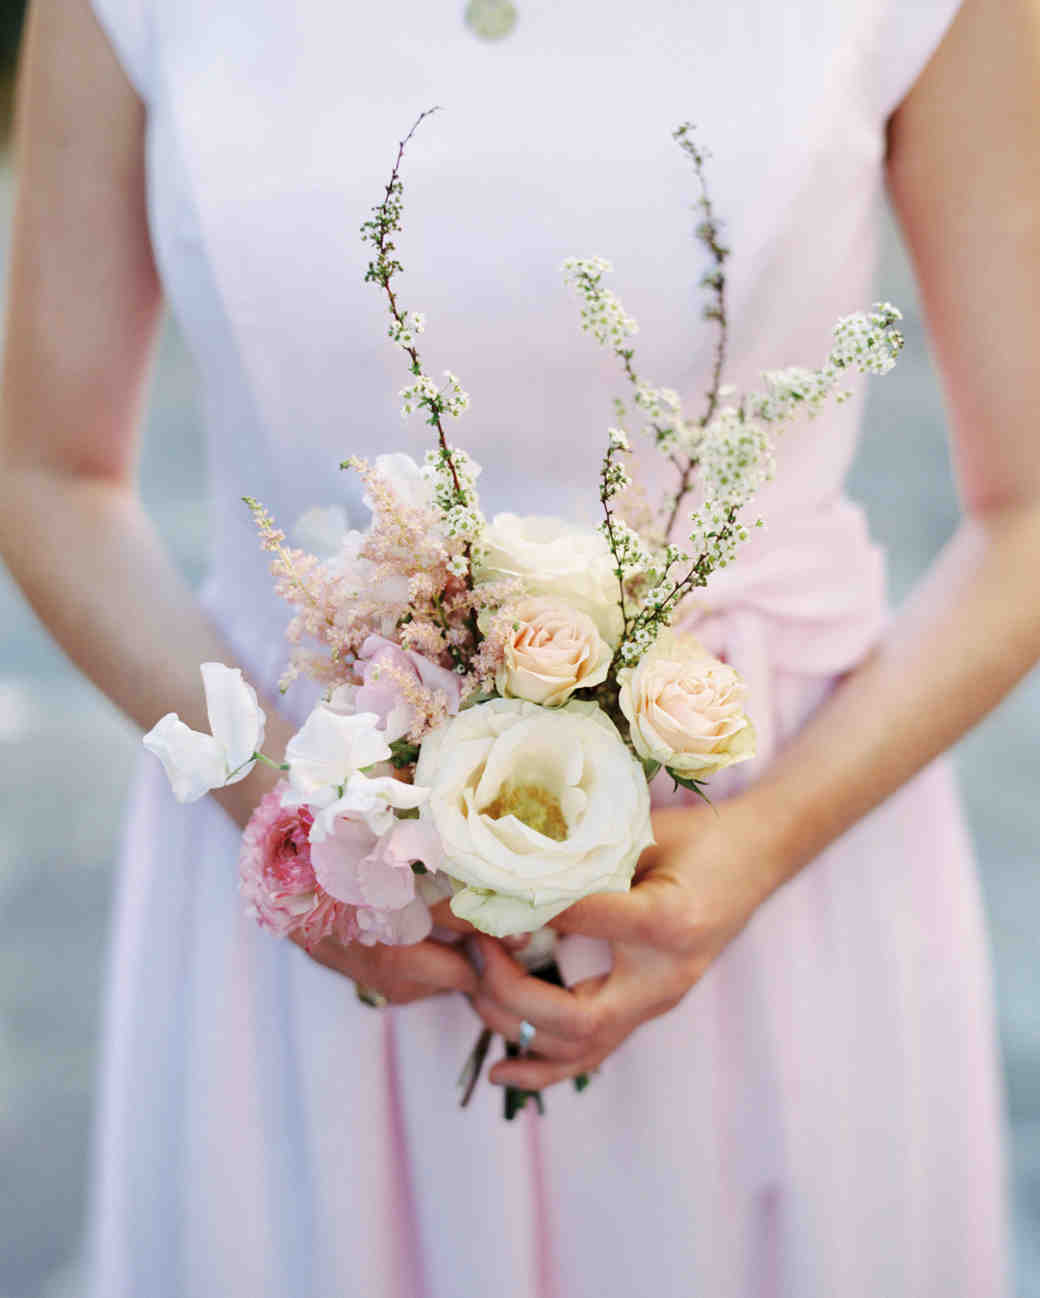 Wedding Flowers Bouquet Ideas: 38 Ideas For Your Bridesmaids' Bouquets